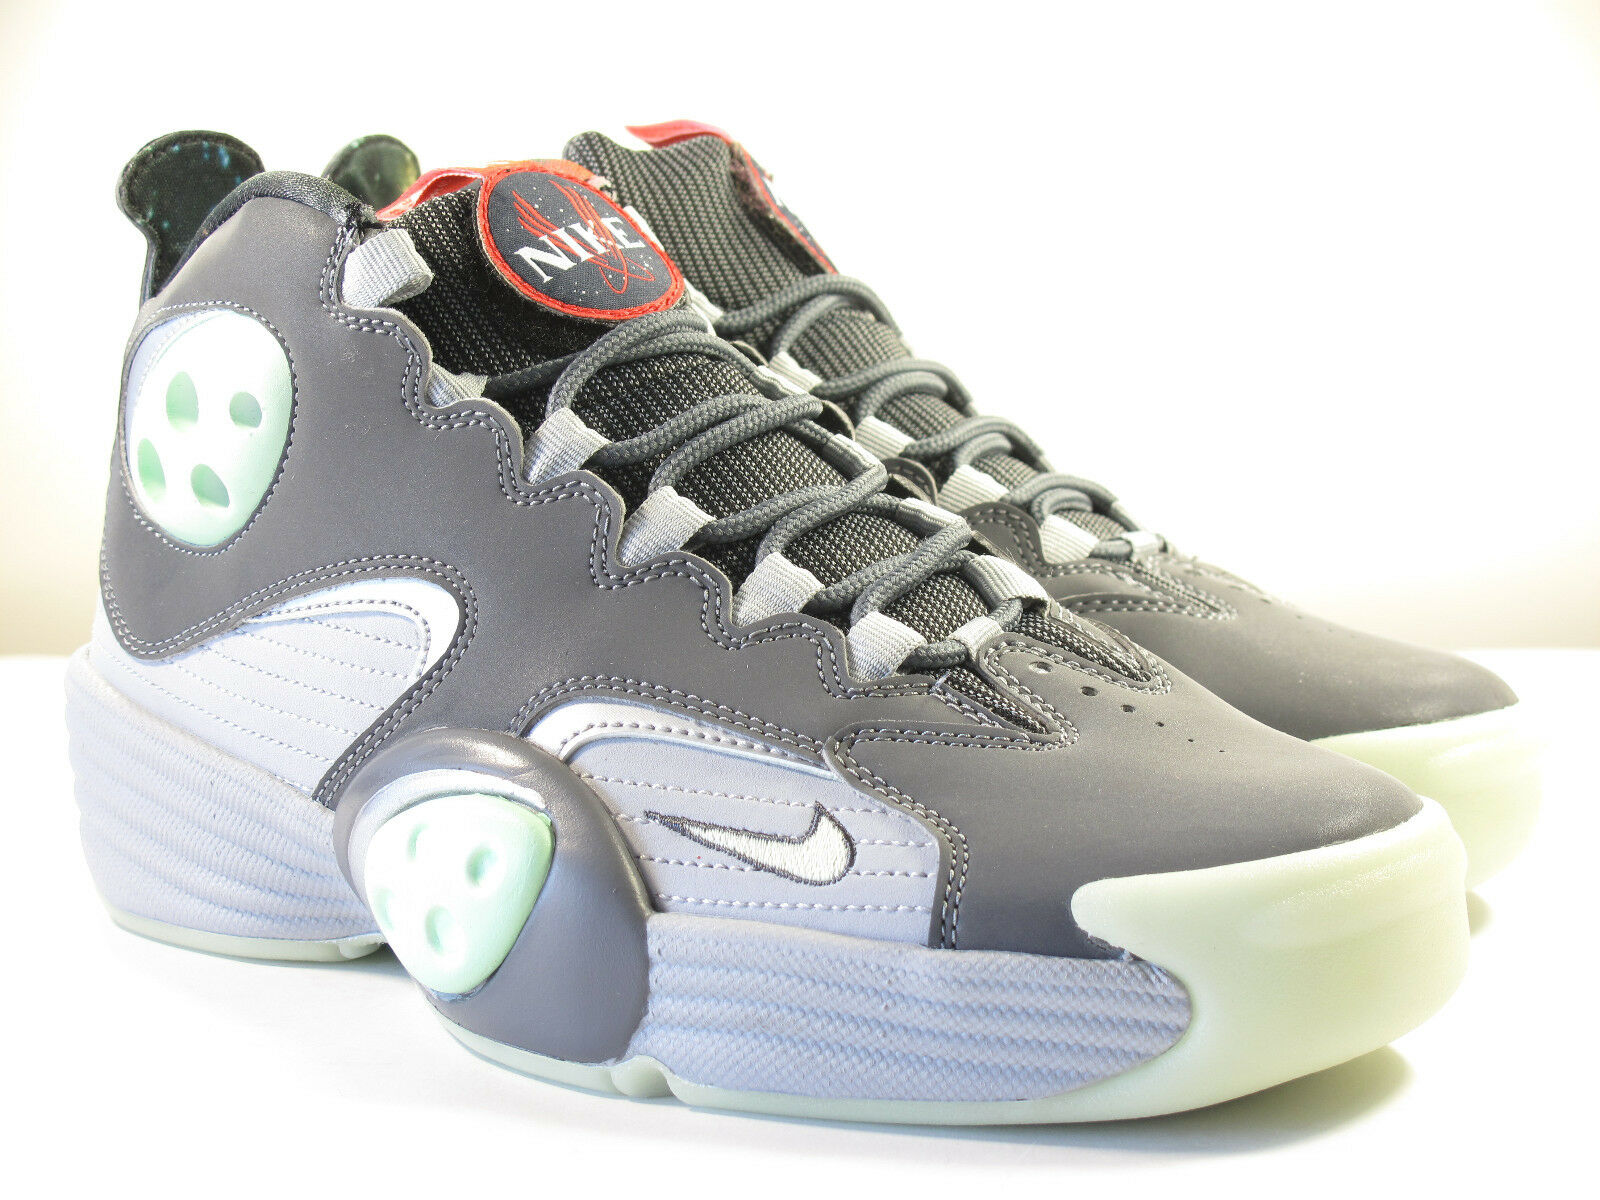 DS NIKE 2011 AIR FLIGHT ONE GALAXY WOLF GREY 8.5 PENNY MAX FOAMPOSITE FORCE 1